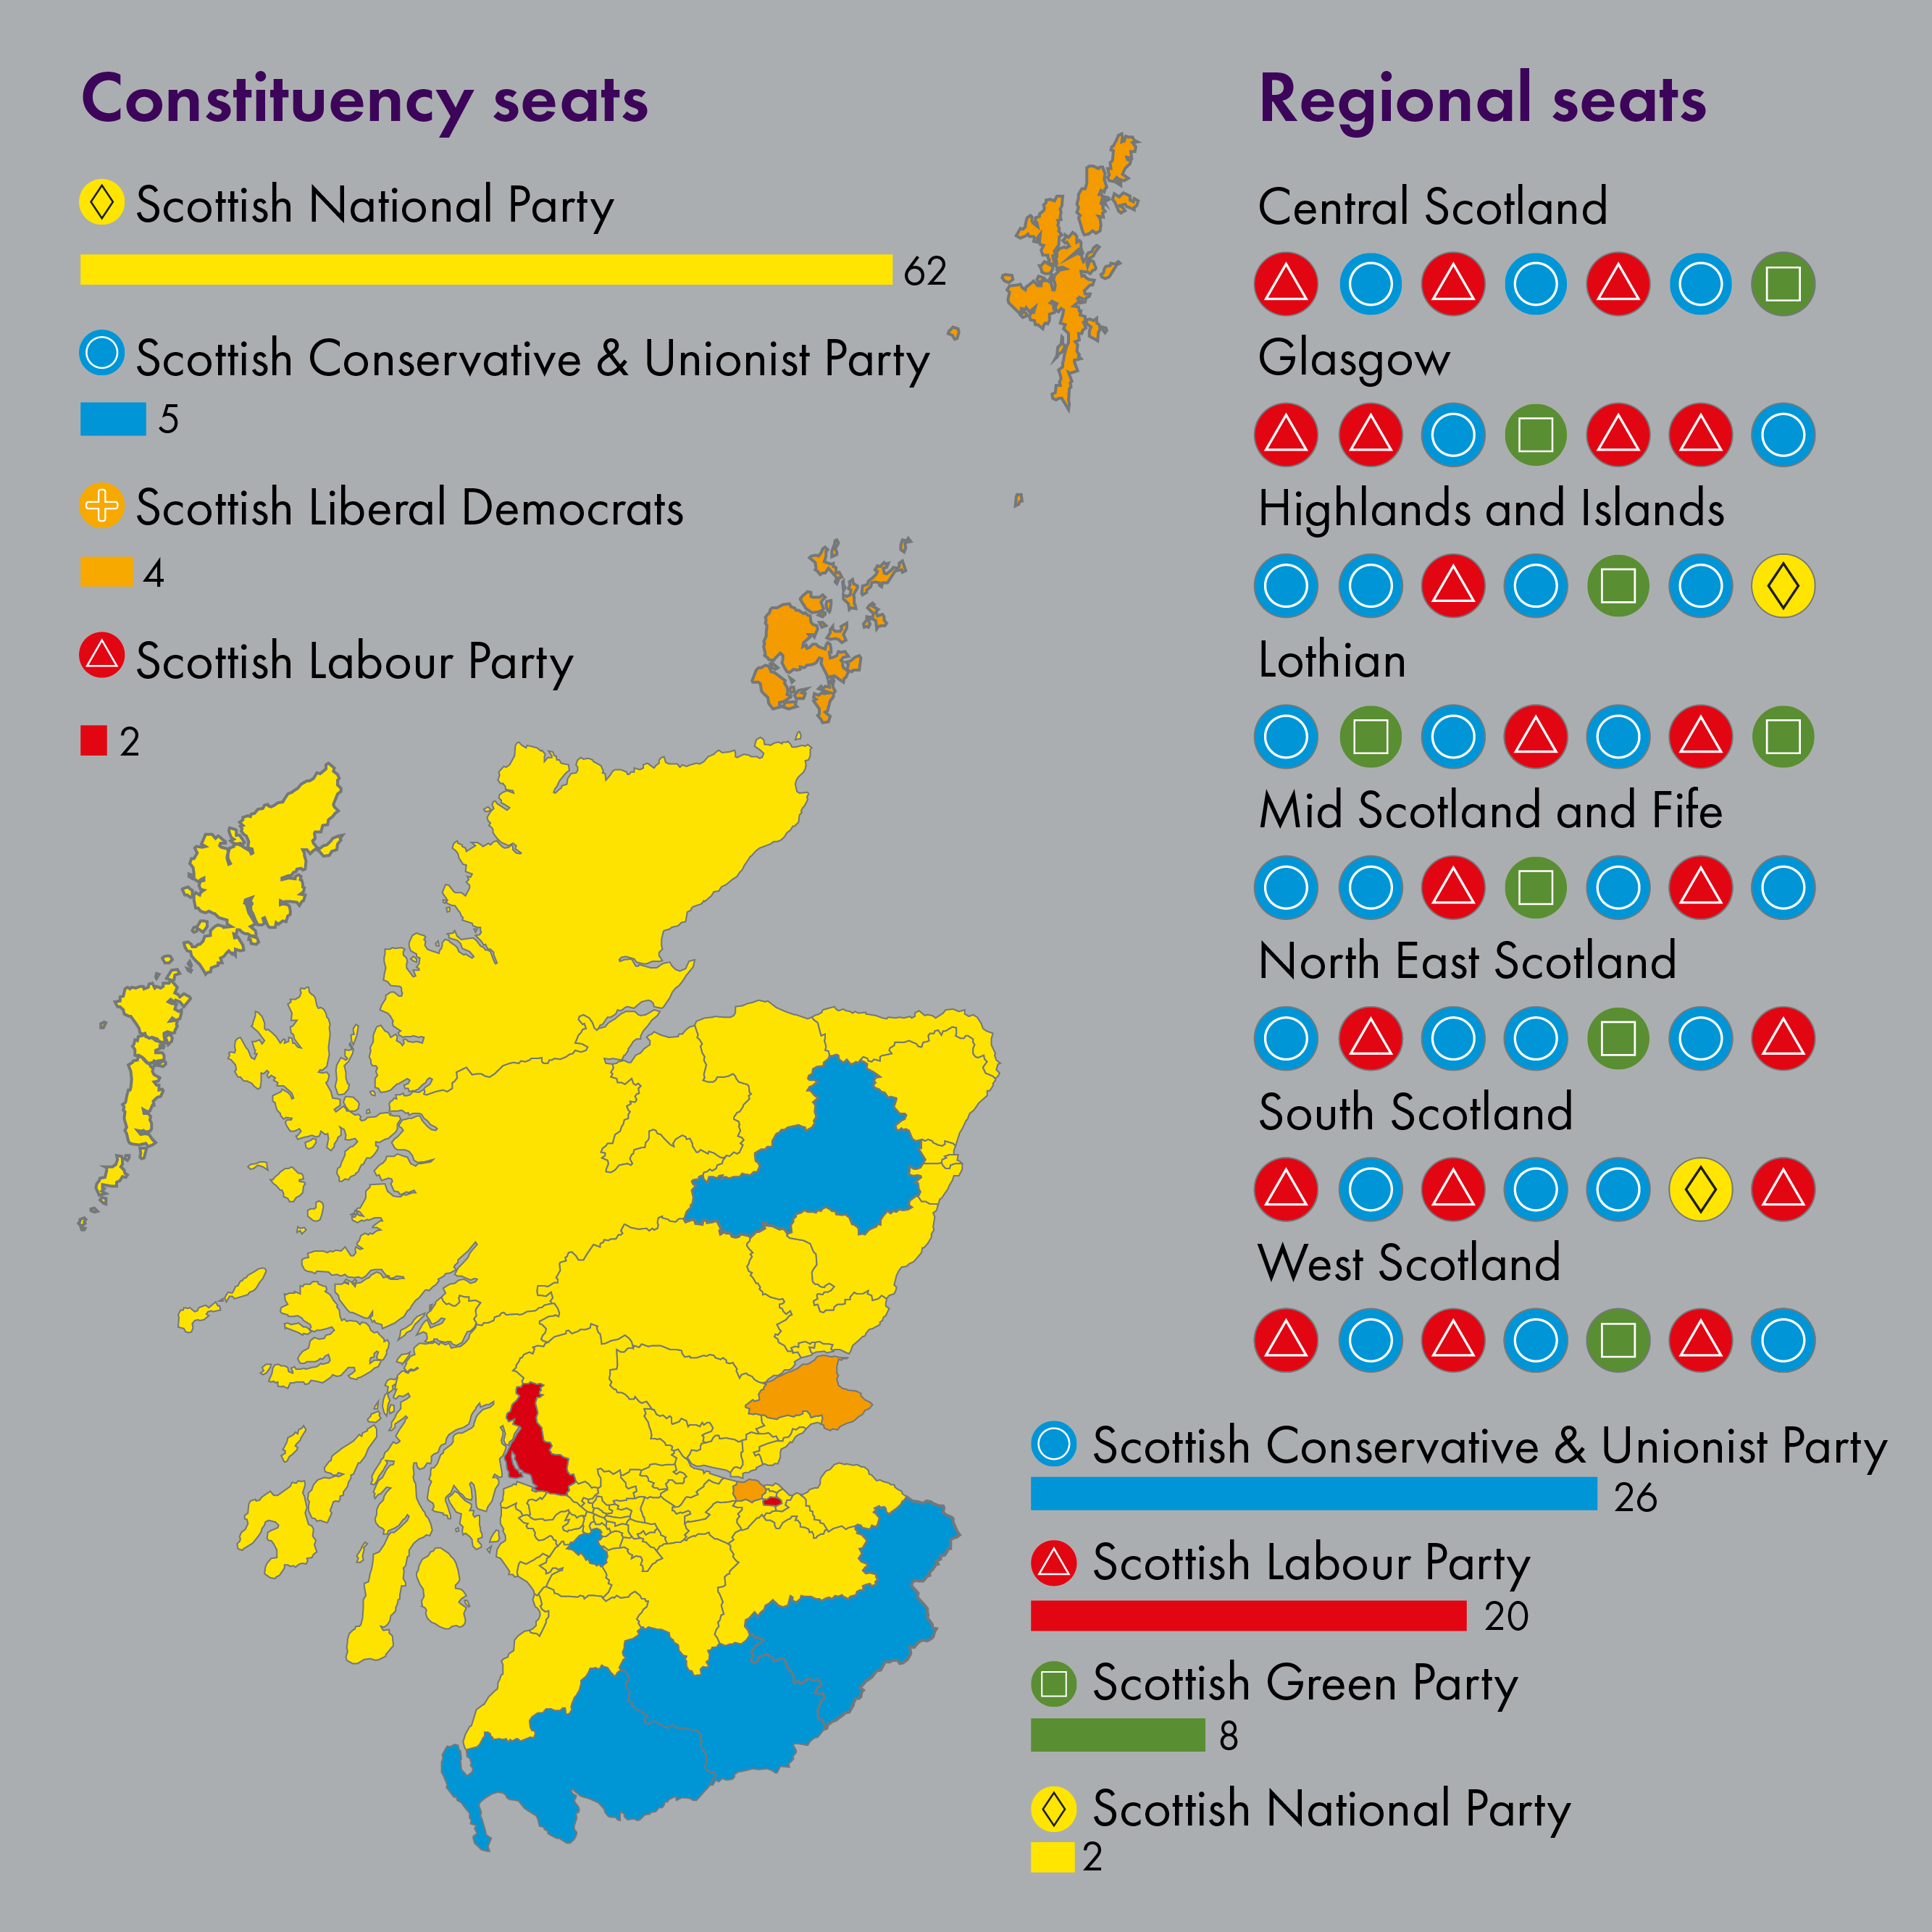 The SNP won 62 out of the 73 constituency seats. The Conservative party won the most regional seats and all of the Green party seats were won from the regional vote.